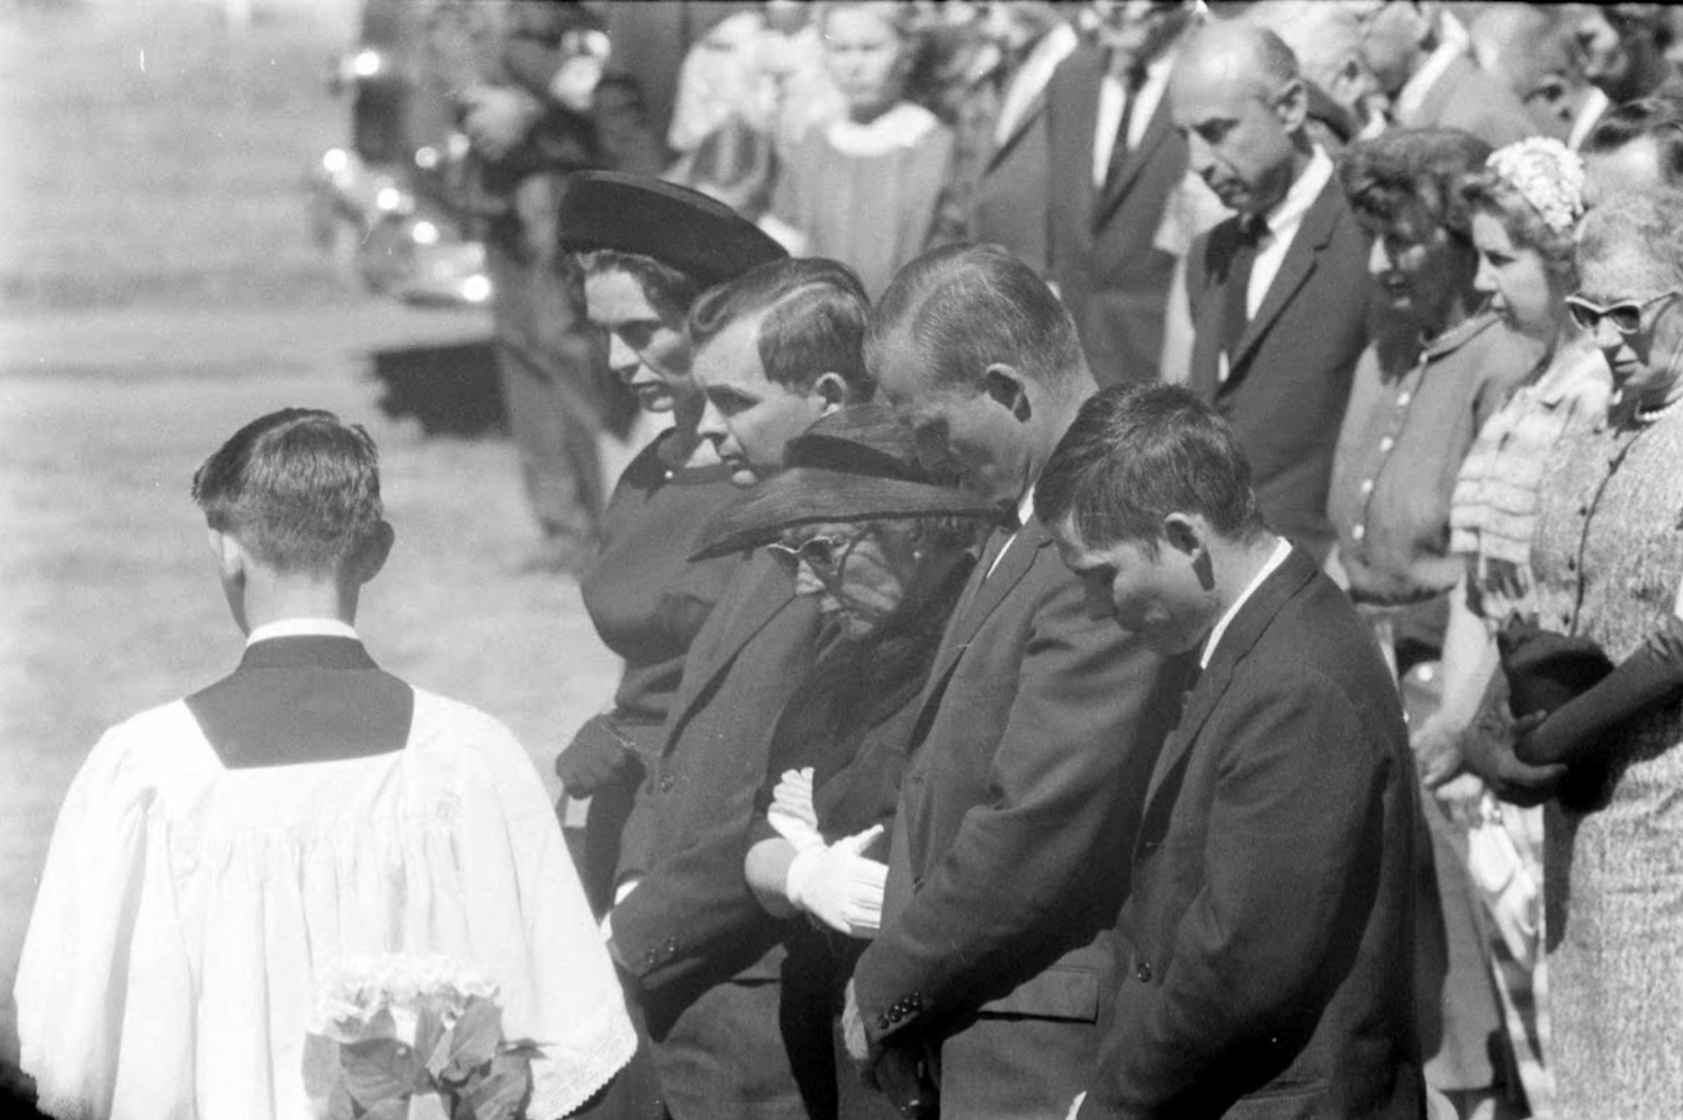 Ernest Hemingway's sons at father's funeral